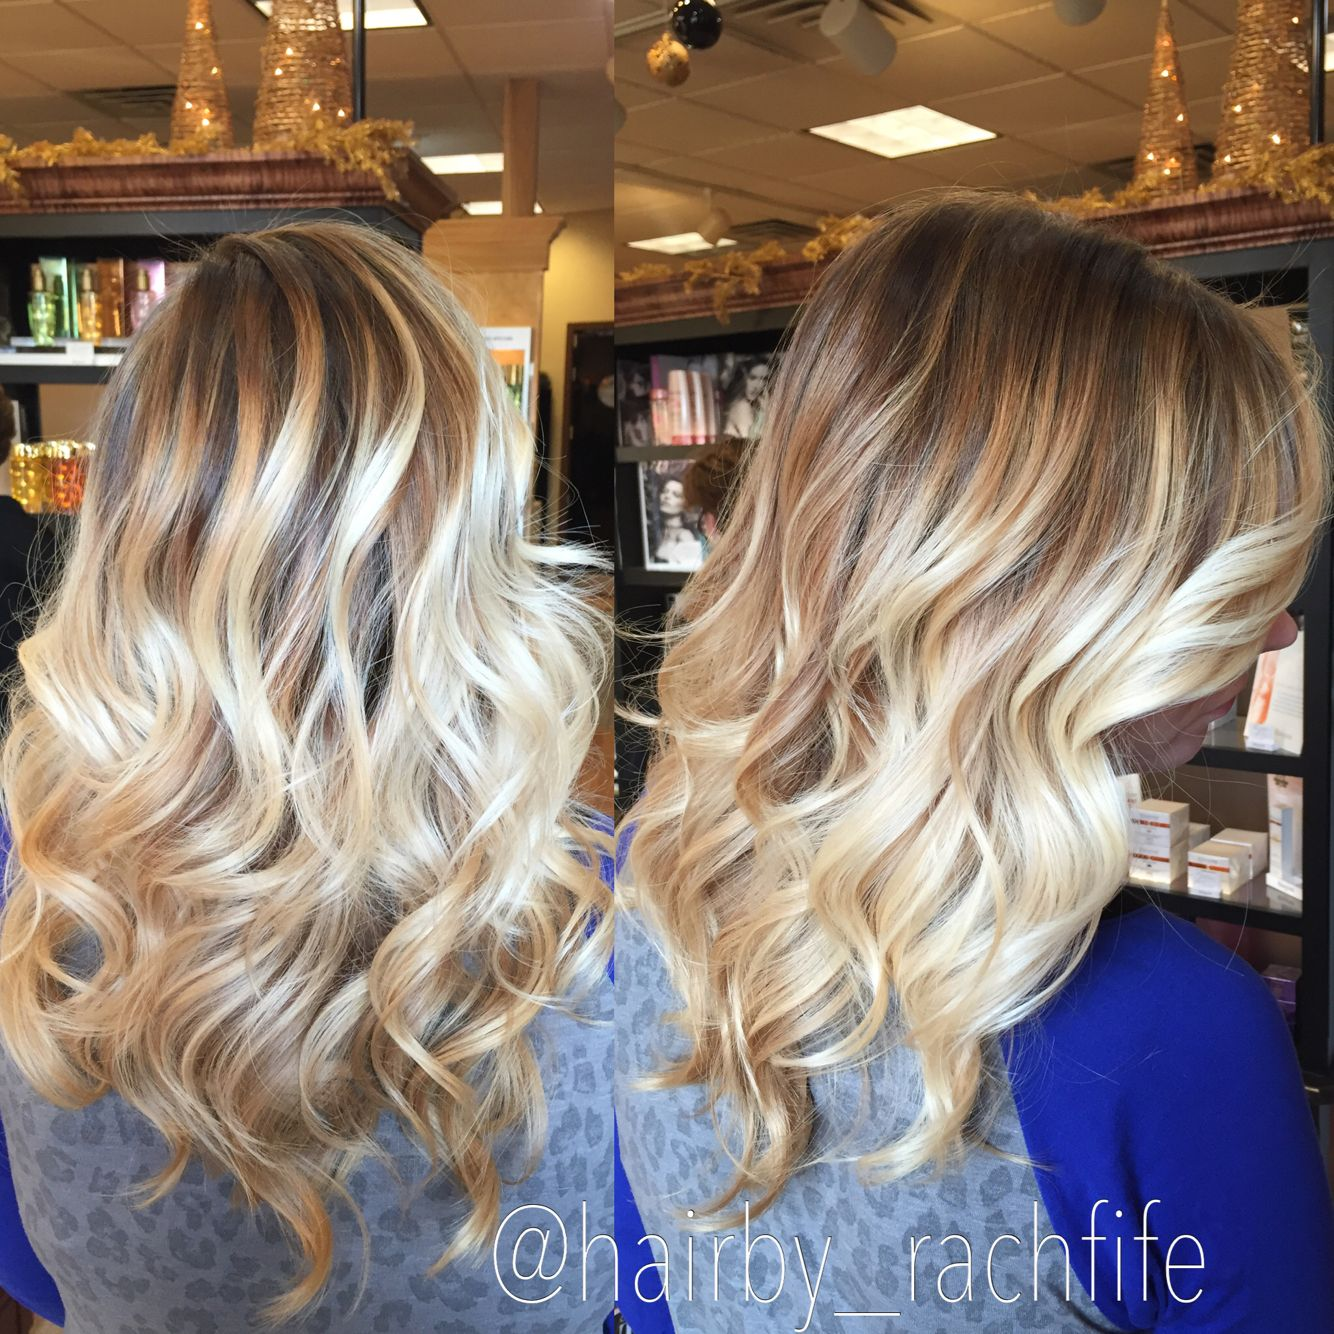 Caramel Salon Root Shadow Stretched Root Bright Blonde Balayage